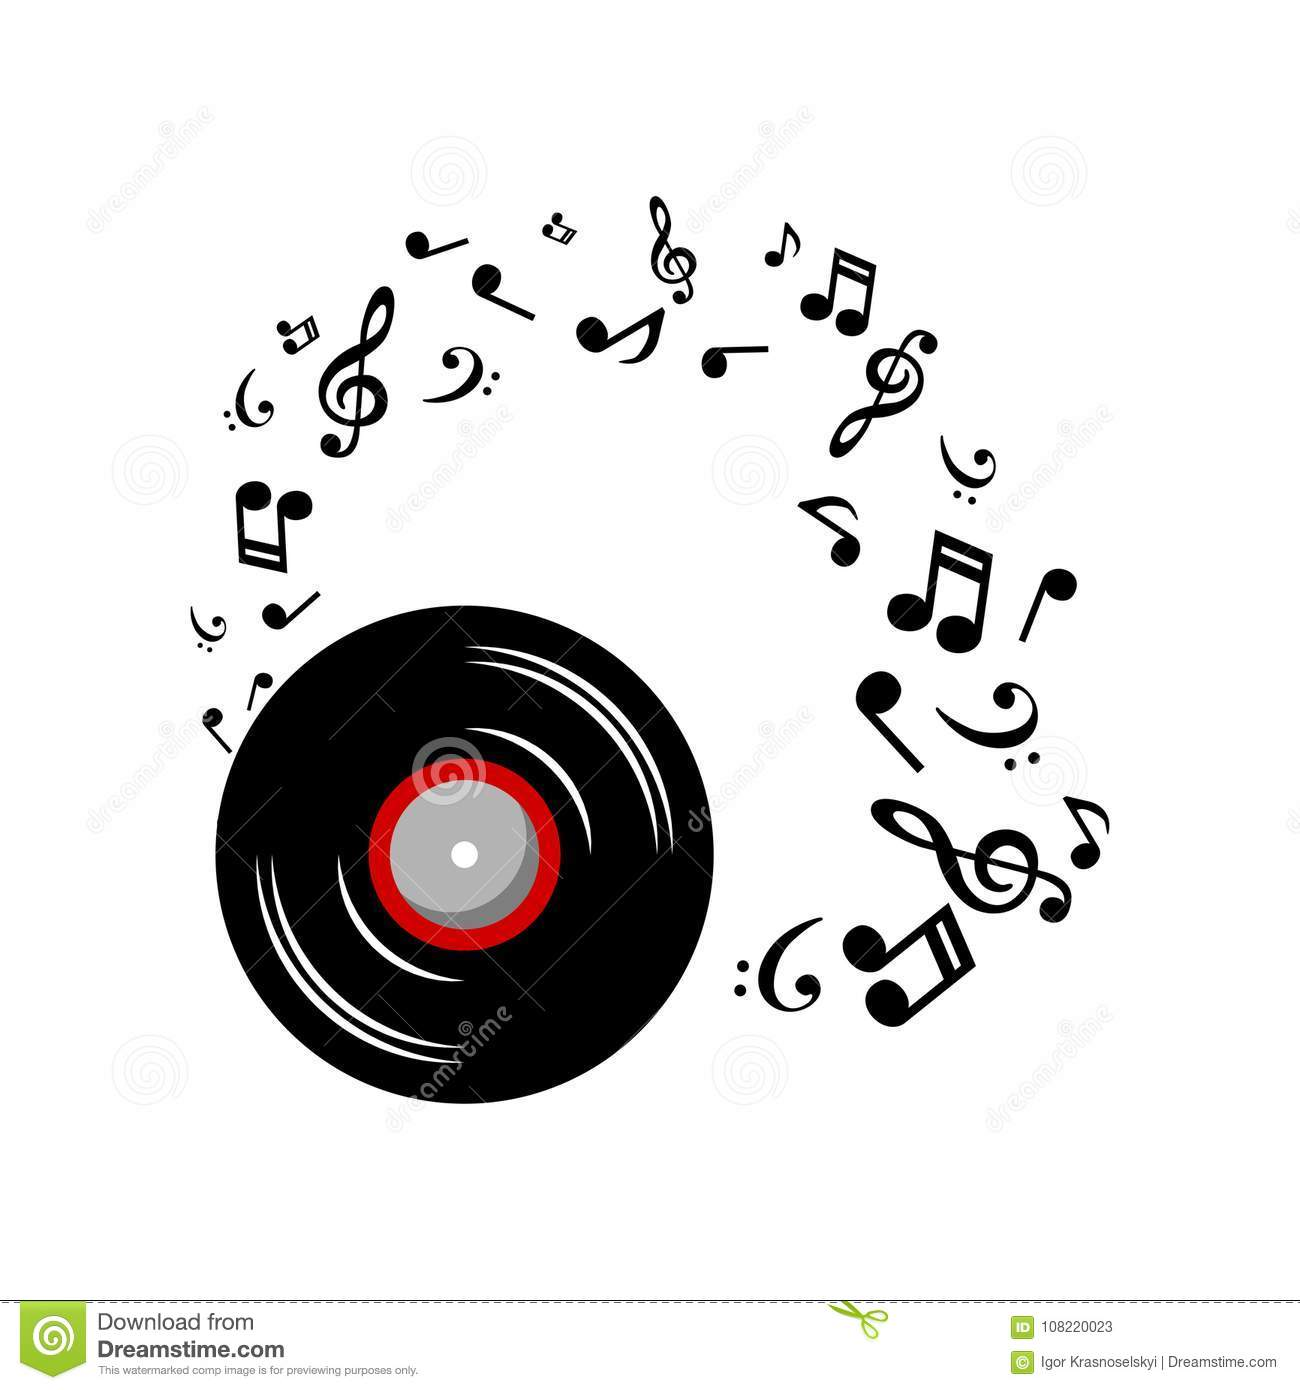 Fantastic Wallpaper Music Disk - music-notes-music-plate-white-background-abstract-music-disk-background-music-notes-music-plate-white-background-108220023  Trends_7035100.jpg